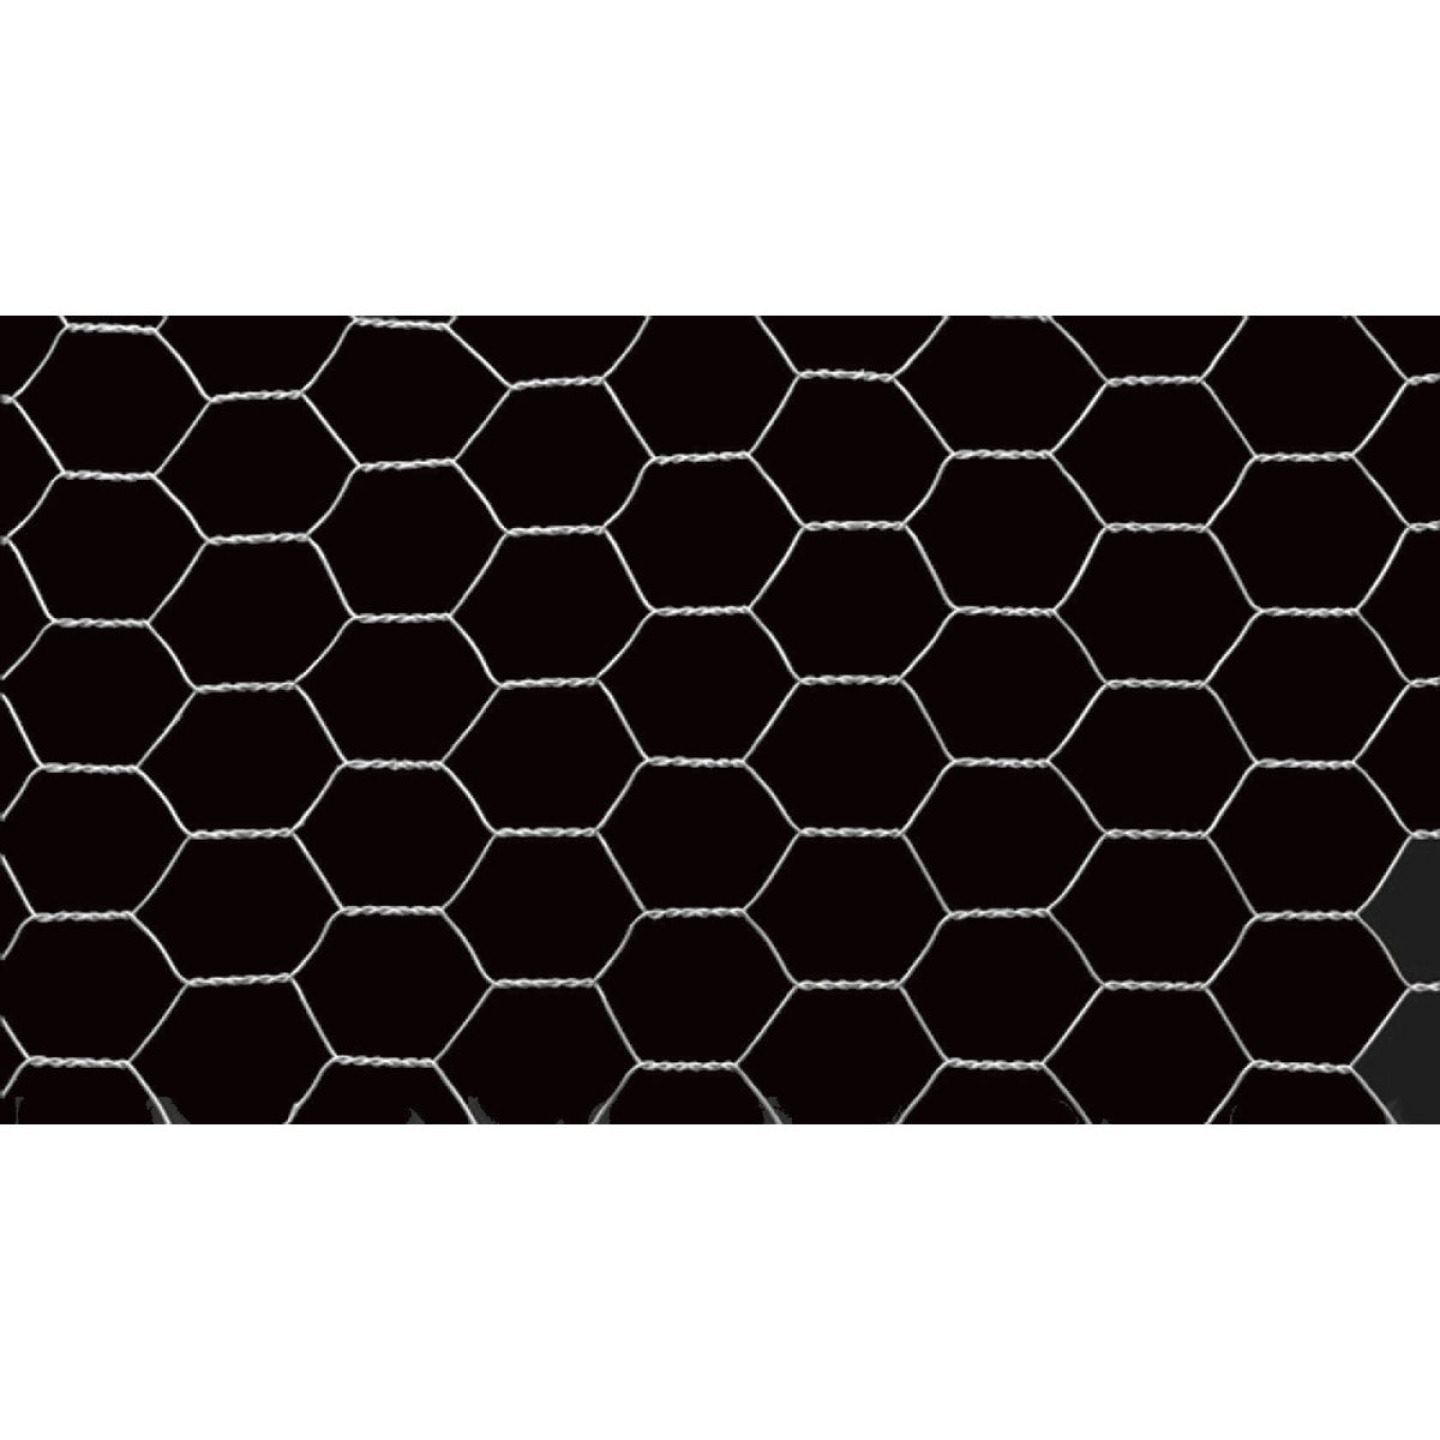 Do it 2 In. x 24 In. H. x 25 Ft. L. Hexagonal Wire Poultry Netting Image 3